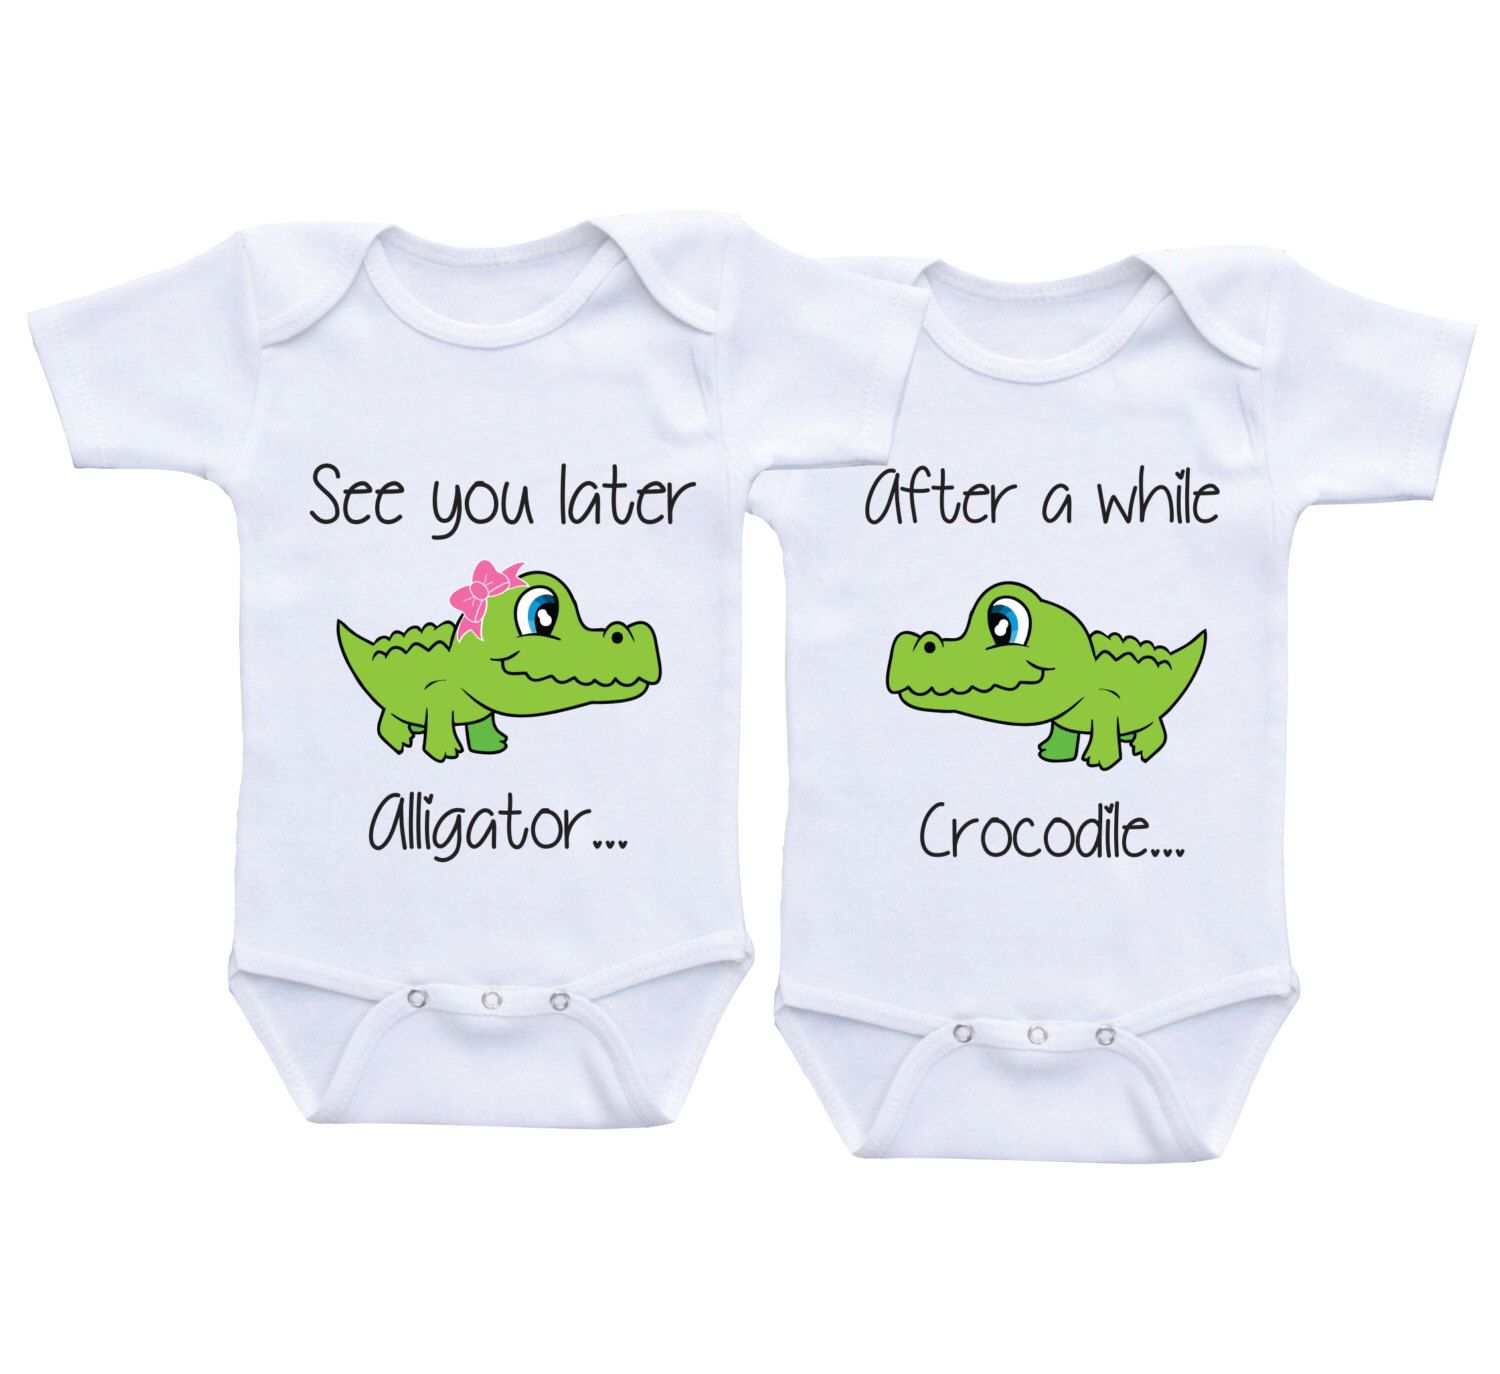 Twins Baby Gifts Boy Girl Twin CLothes Shower Gift Outfits Onesies For